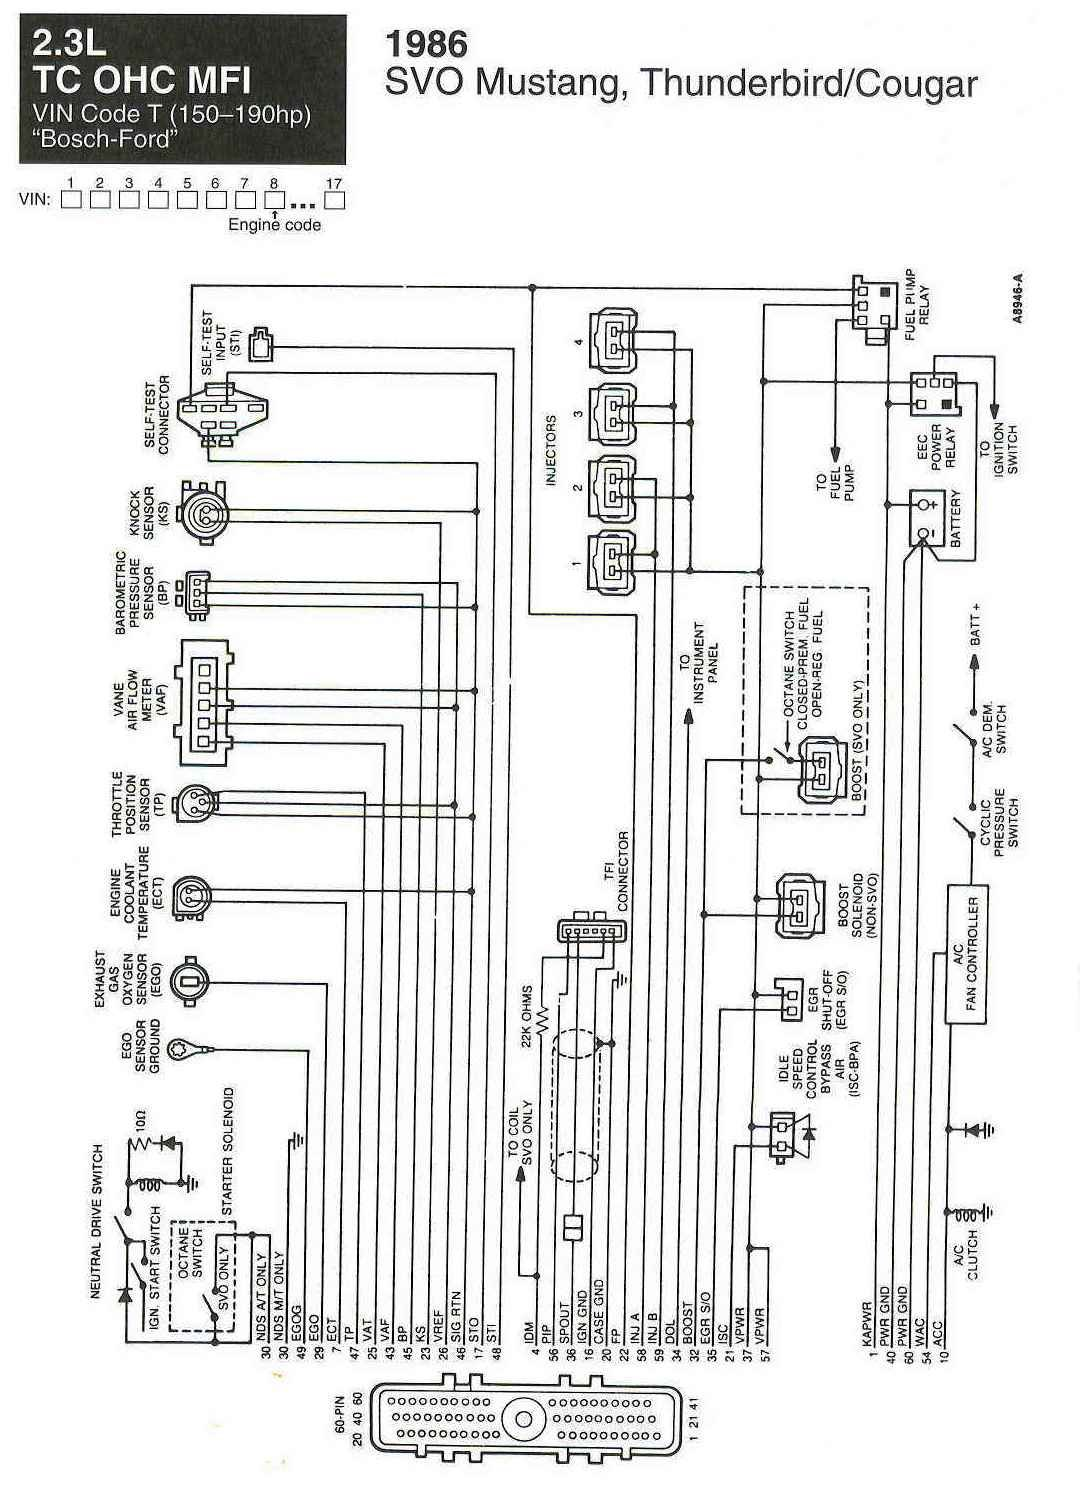 Thunderbird Premium Sound Wiring Diagram Smart Ford Au 86 Svo Boost Control Switch Mustang Forum Schematic Circuit